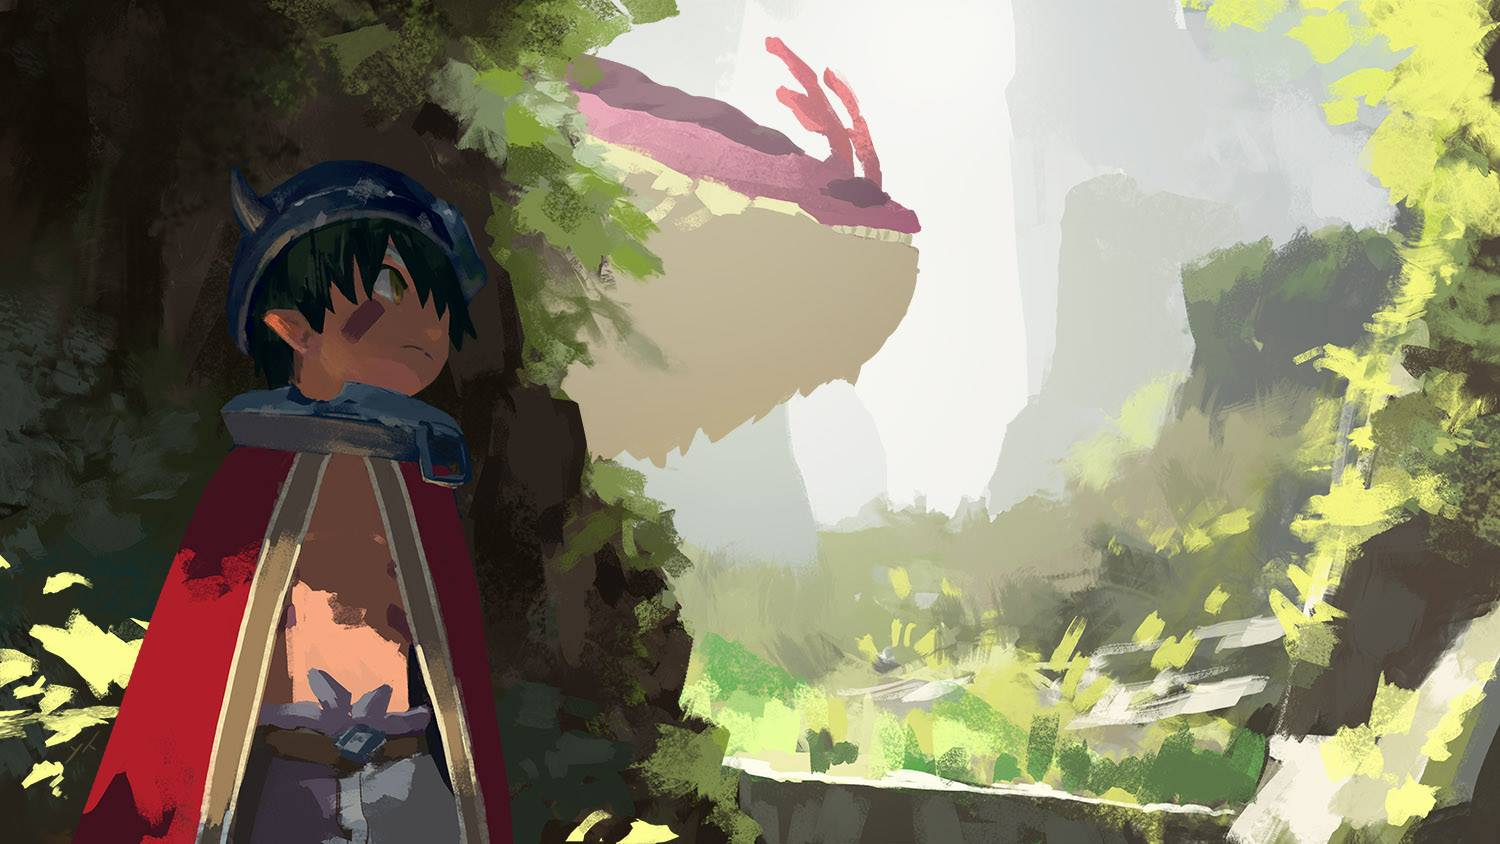 Se Made in Abyss fosse um game